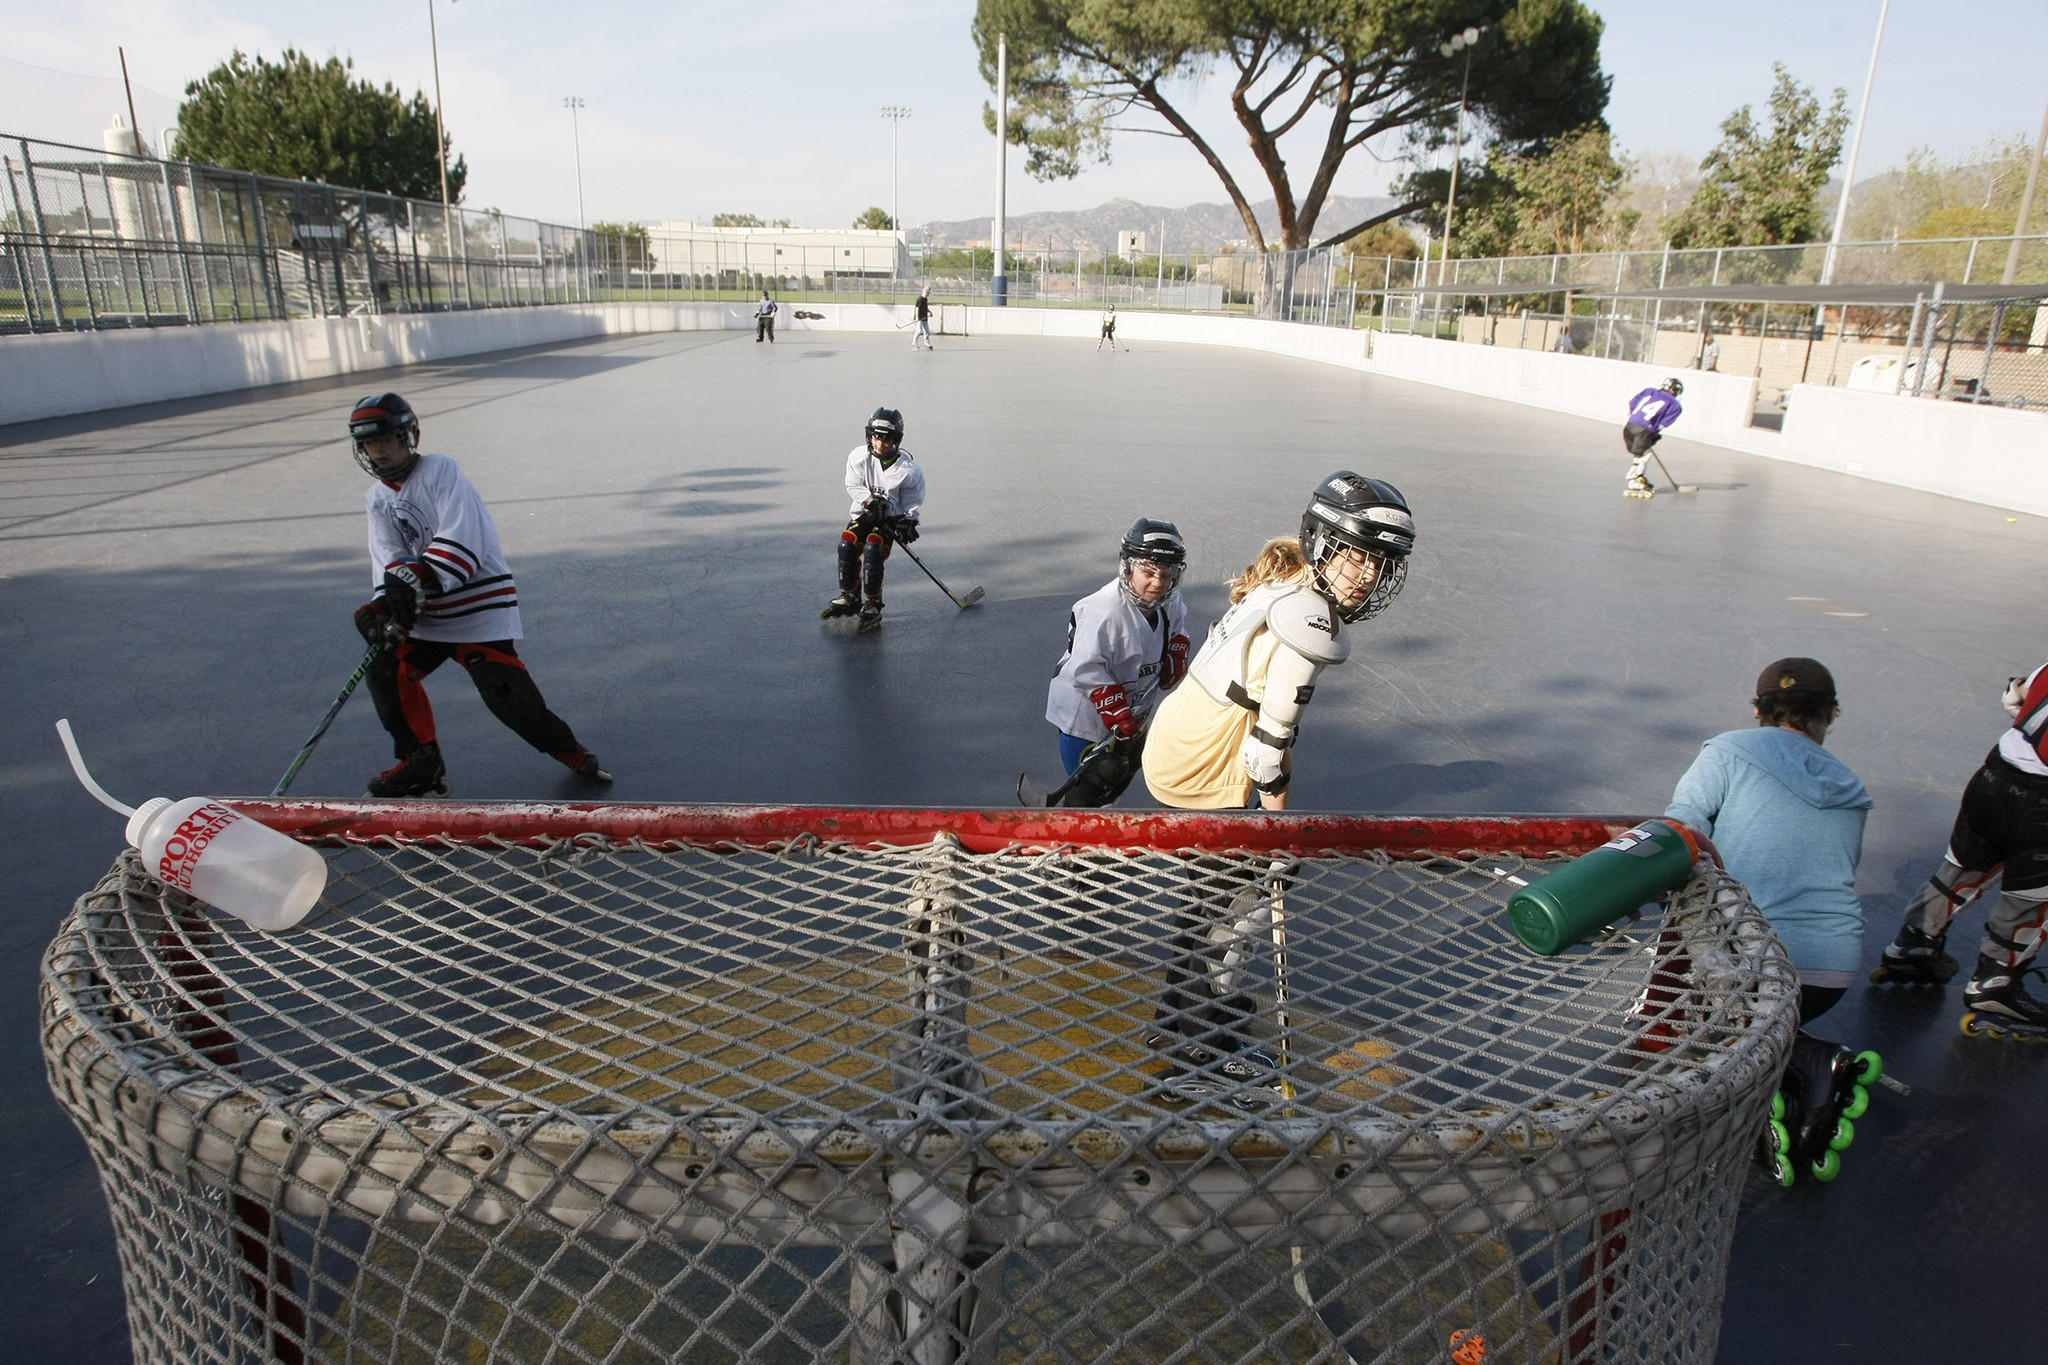 Children play at the Ralph Foy Park roller hockey rink in Burbank on Friday, March 14, 2014.